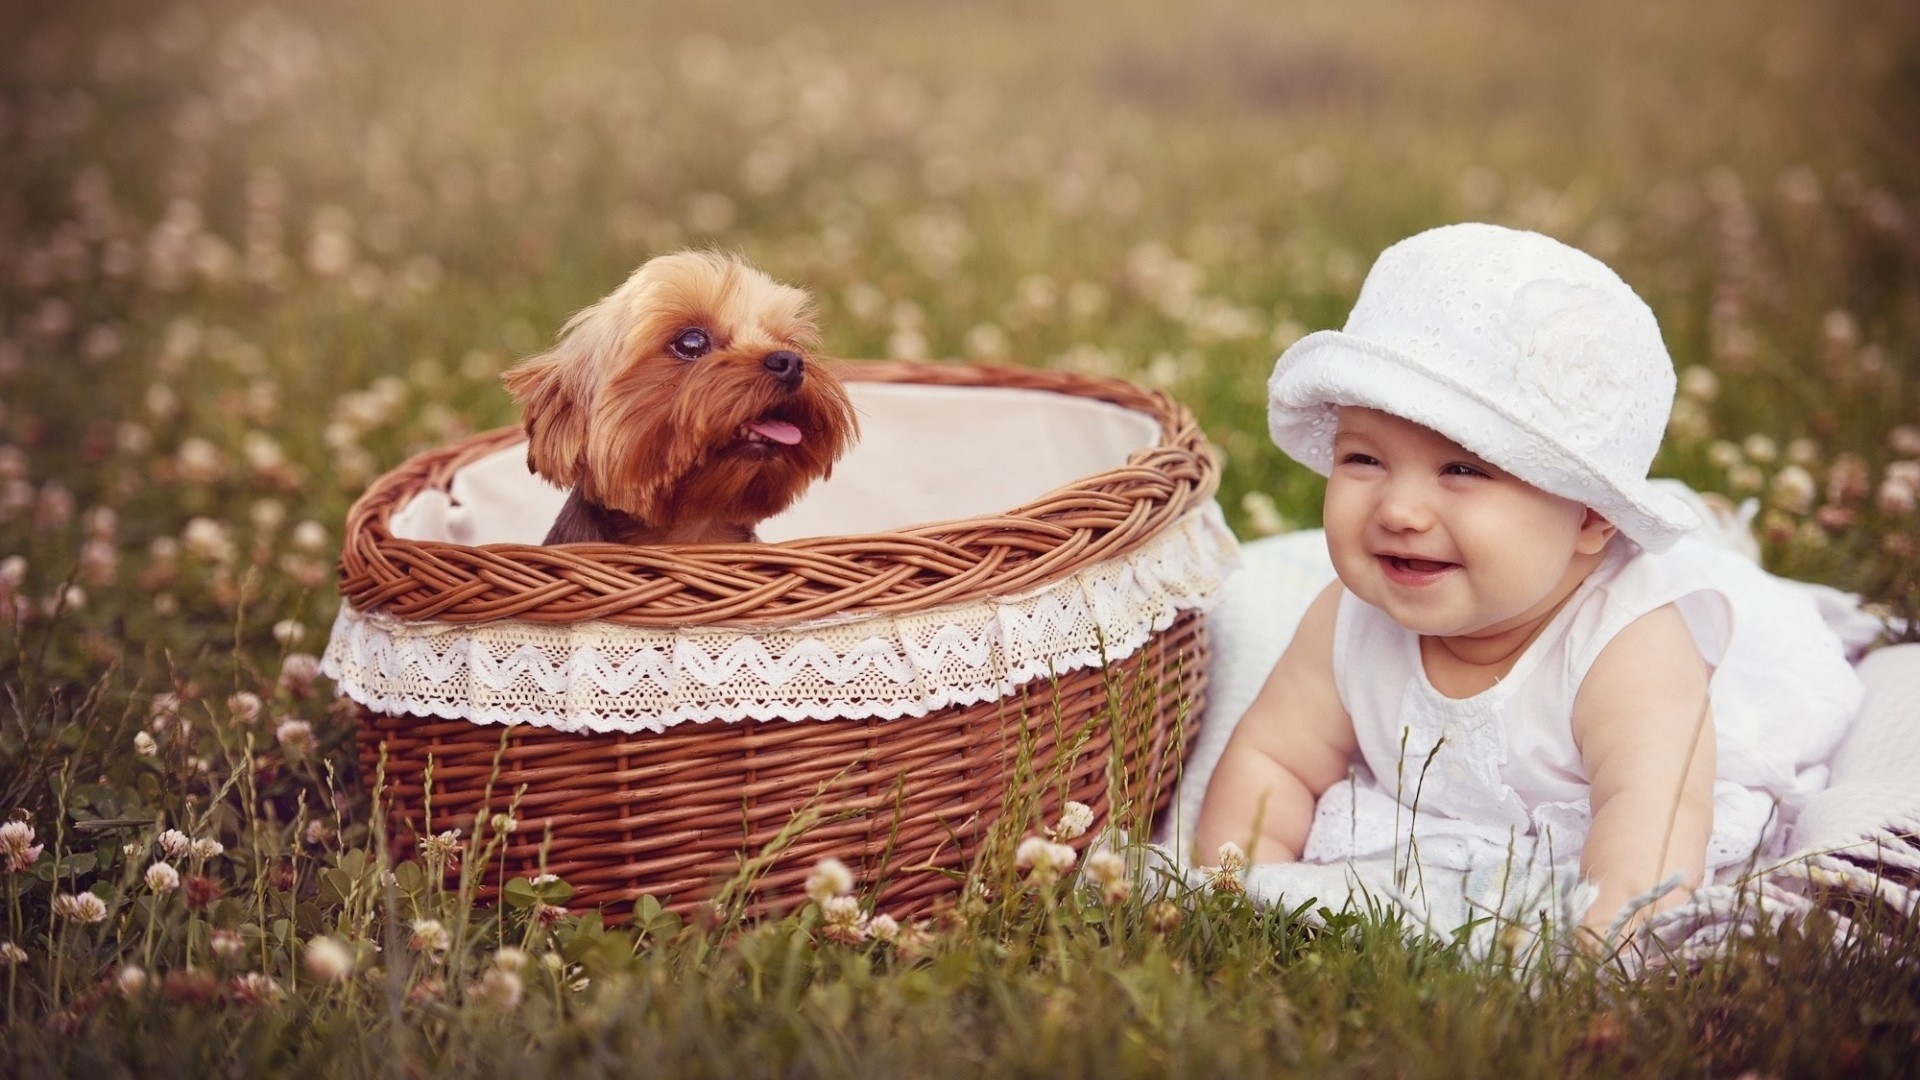 1920x1080 Cute smiling baby with puppy in basket hd desktop wallpapers